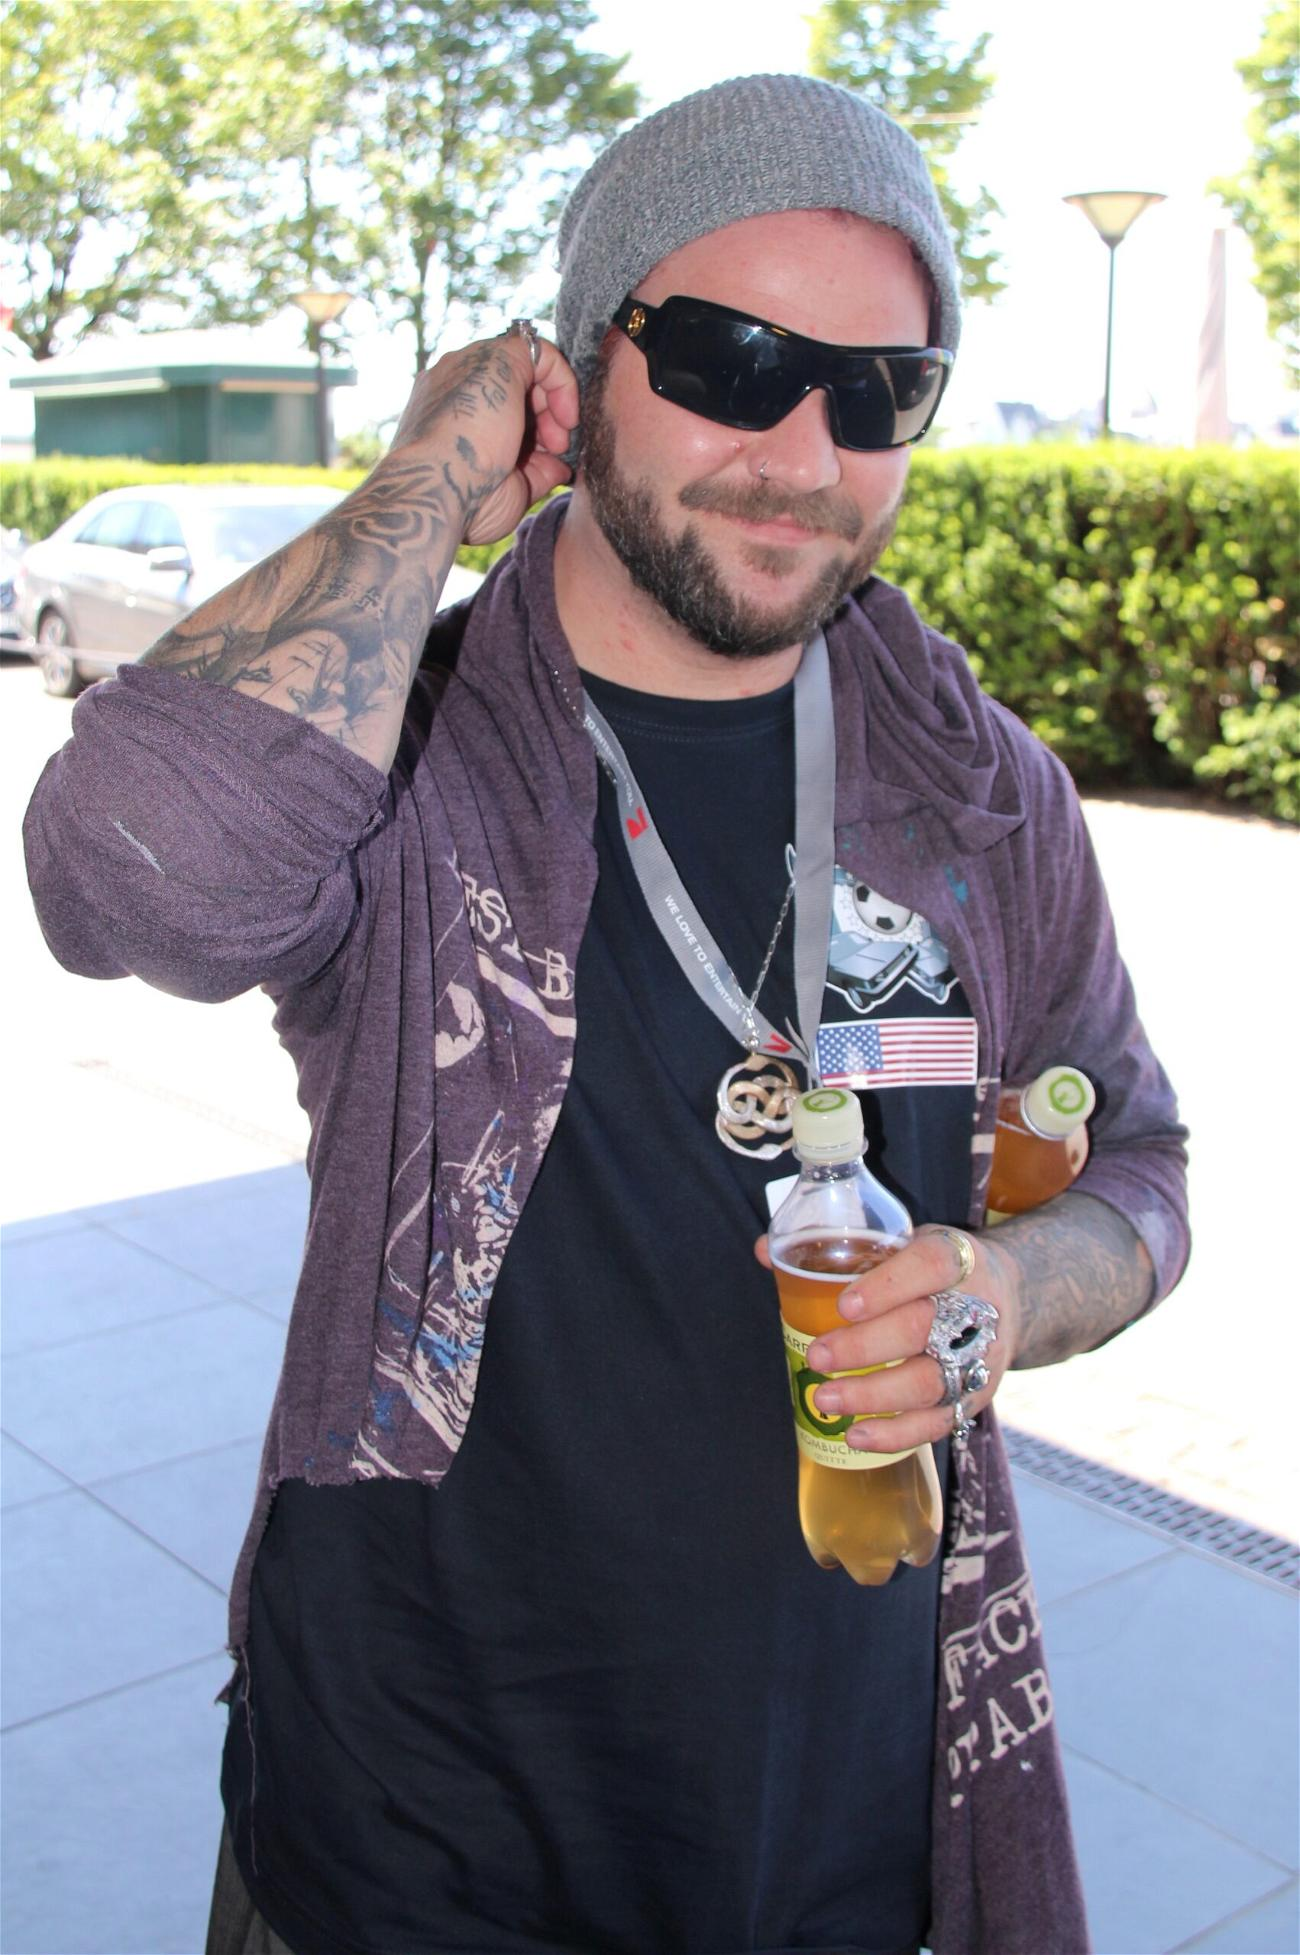 Bam Margera Detained After Allegedly Threatening To 'Jump Off A Bridge'